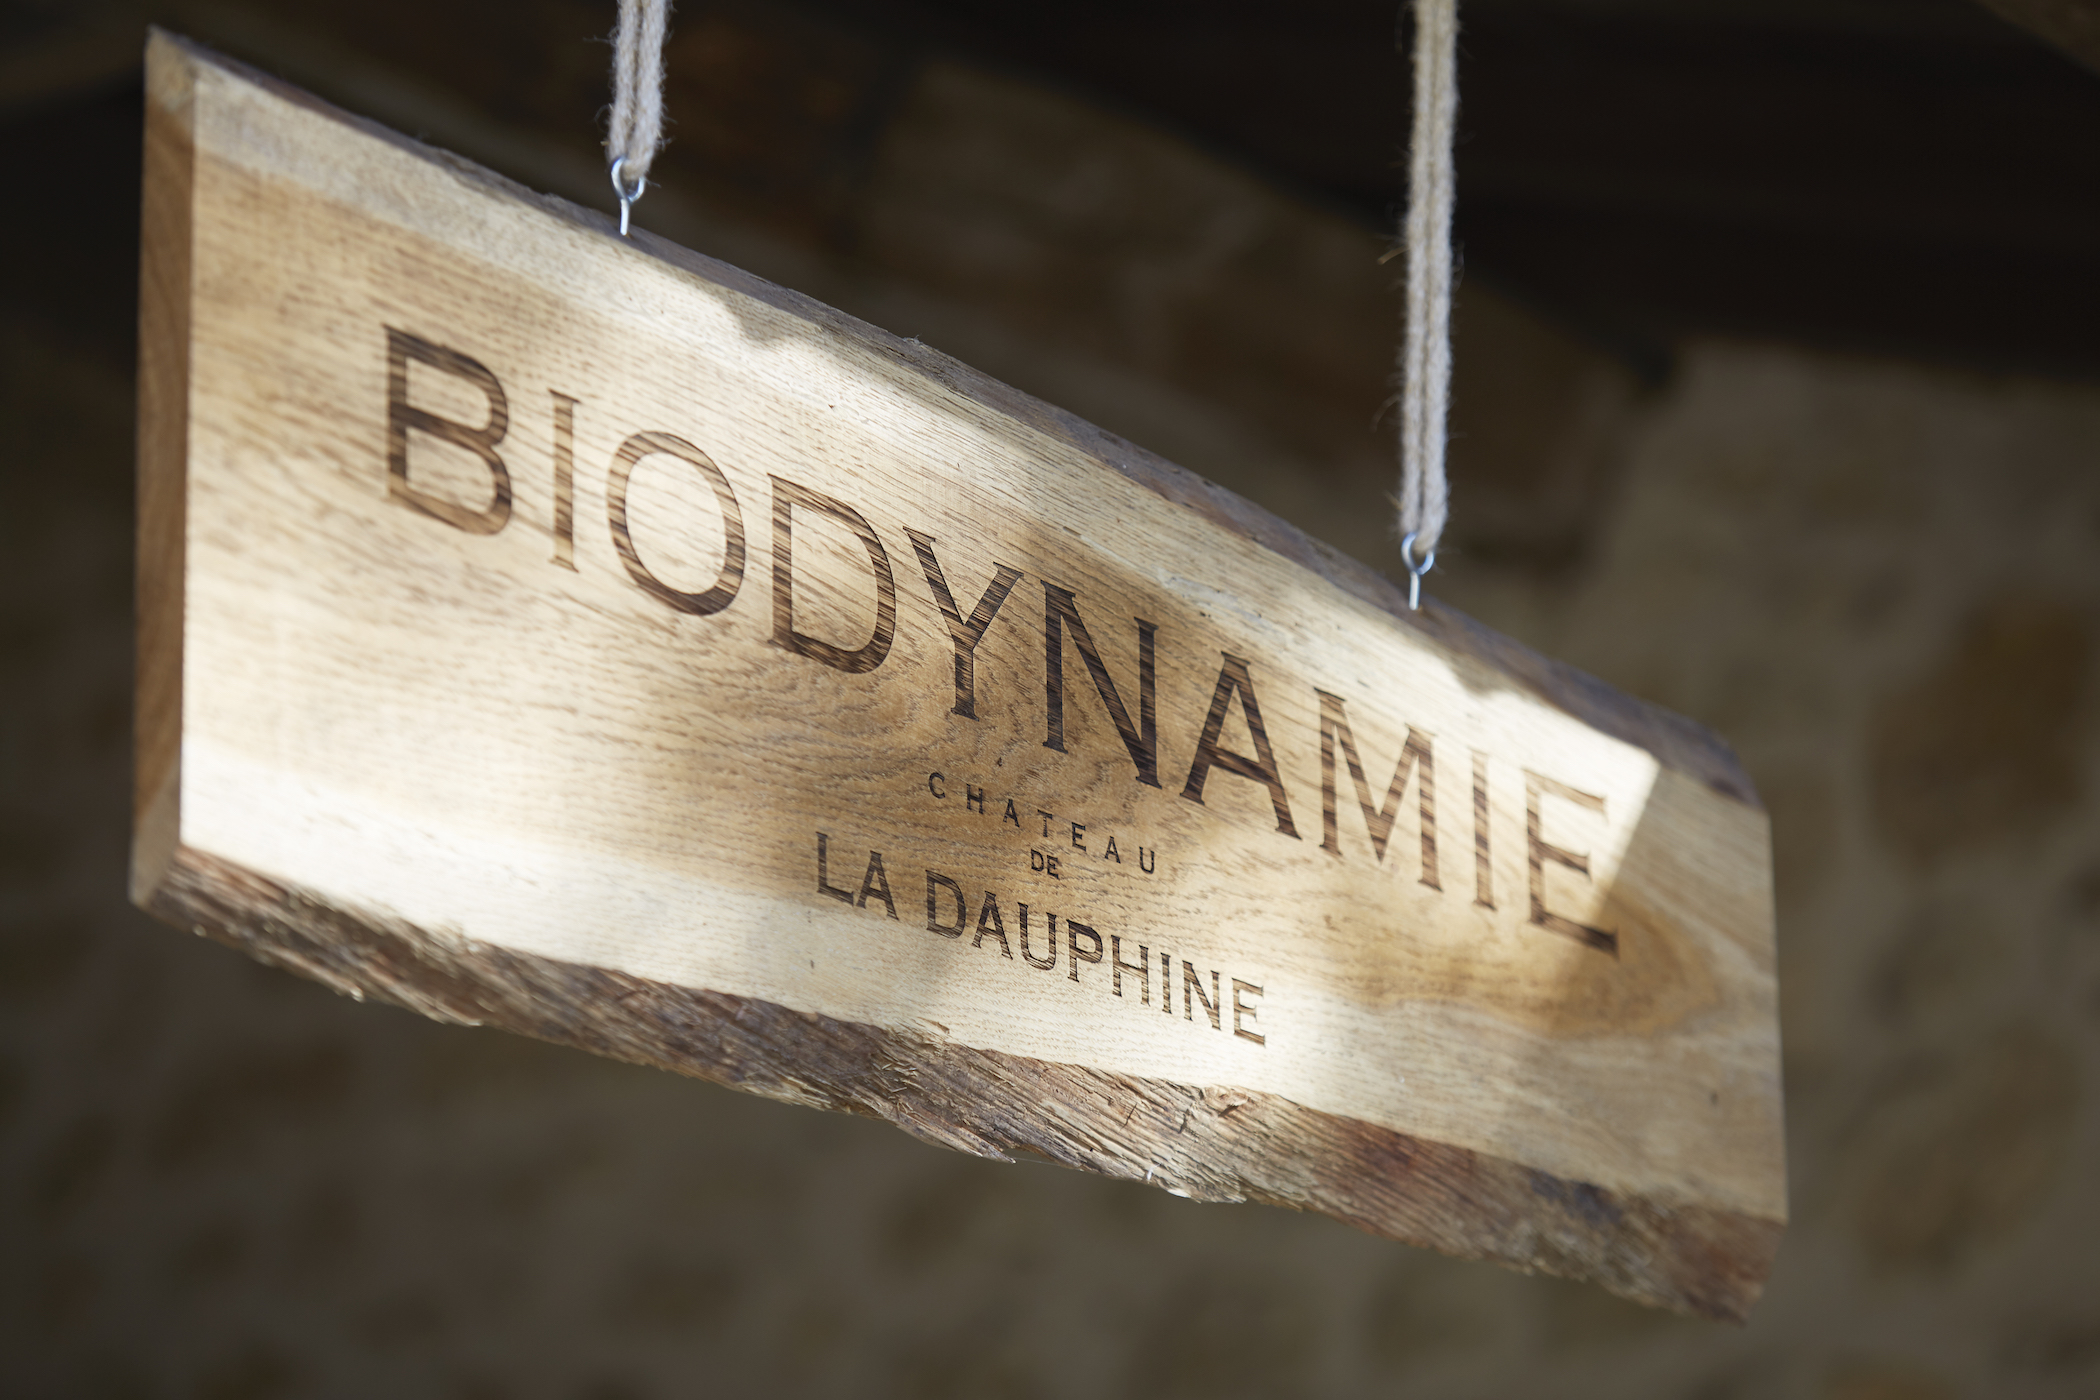 Biodynamic philosophies put to practice @ladauphine